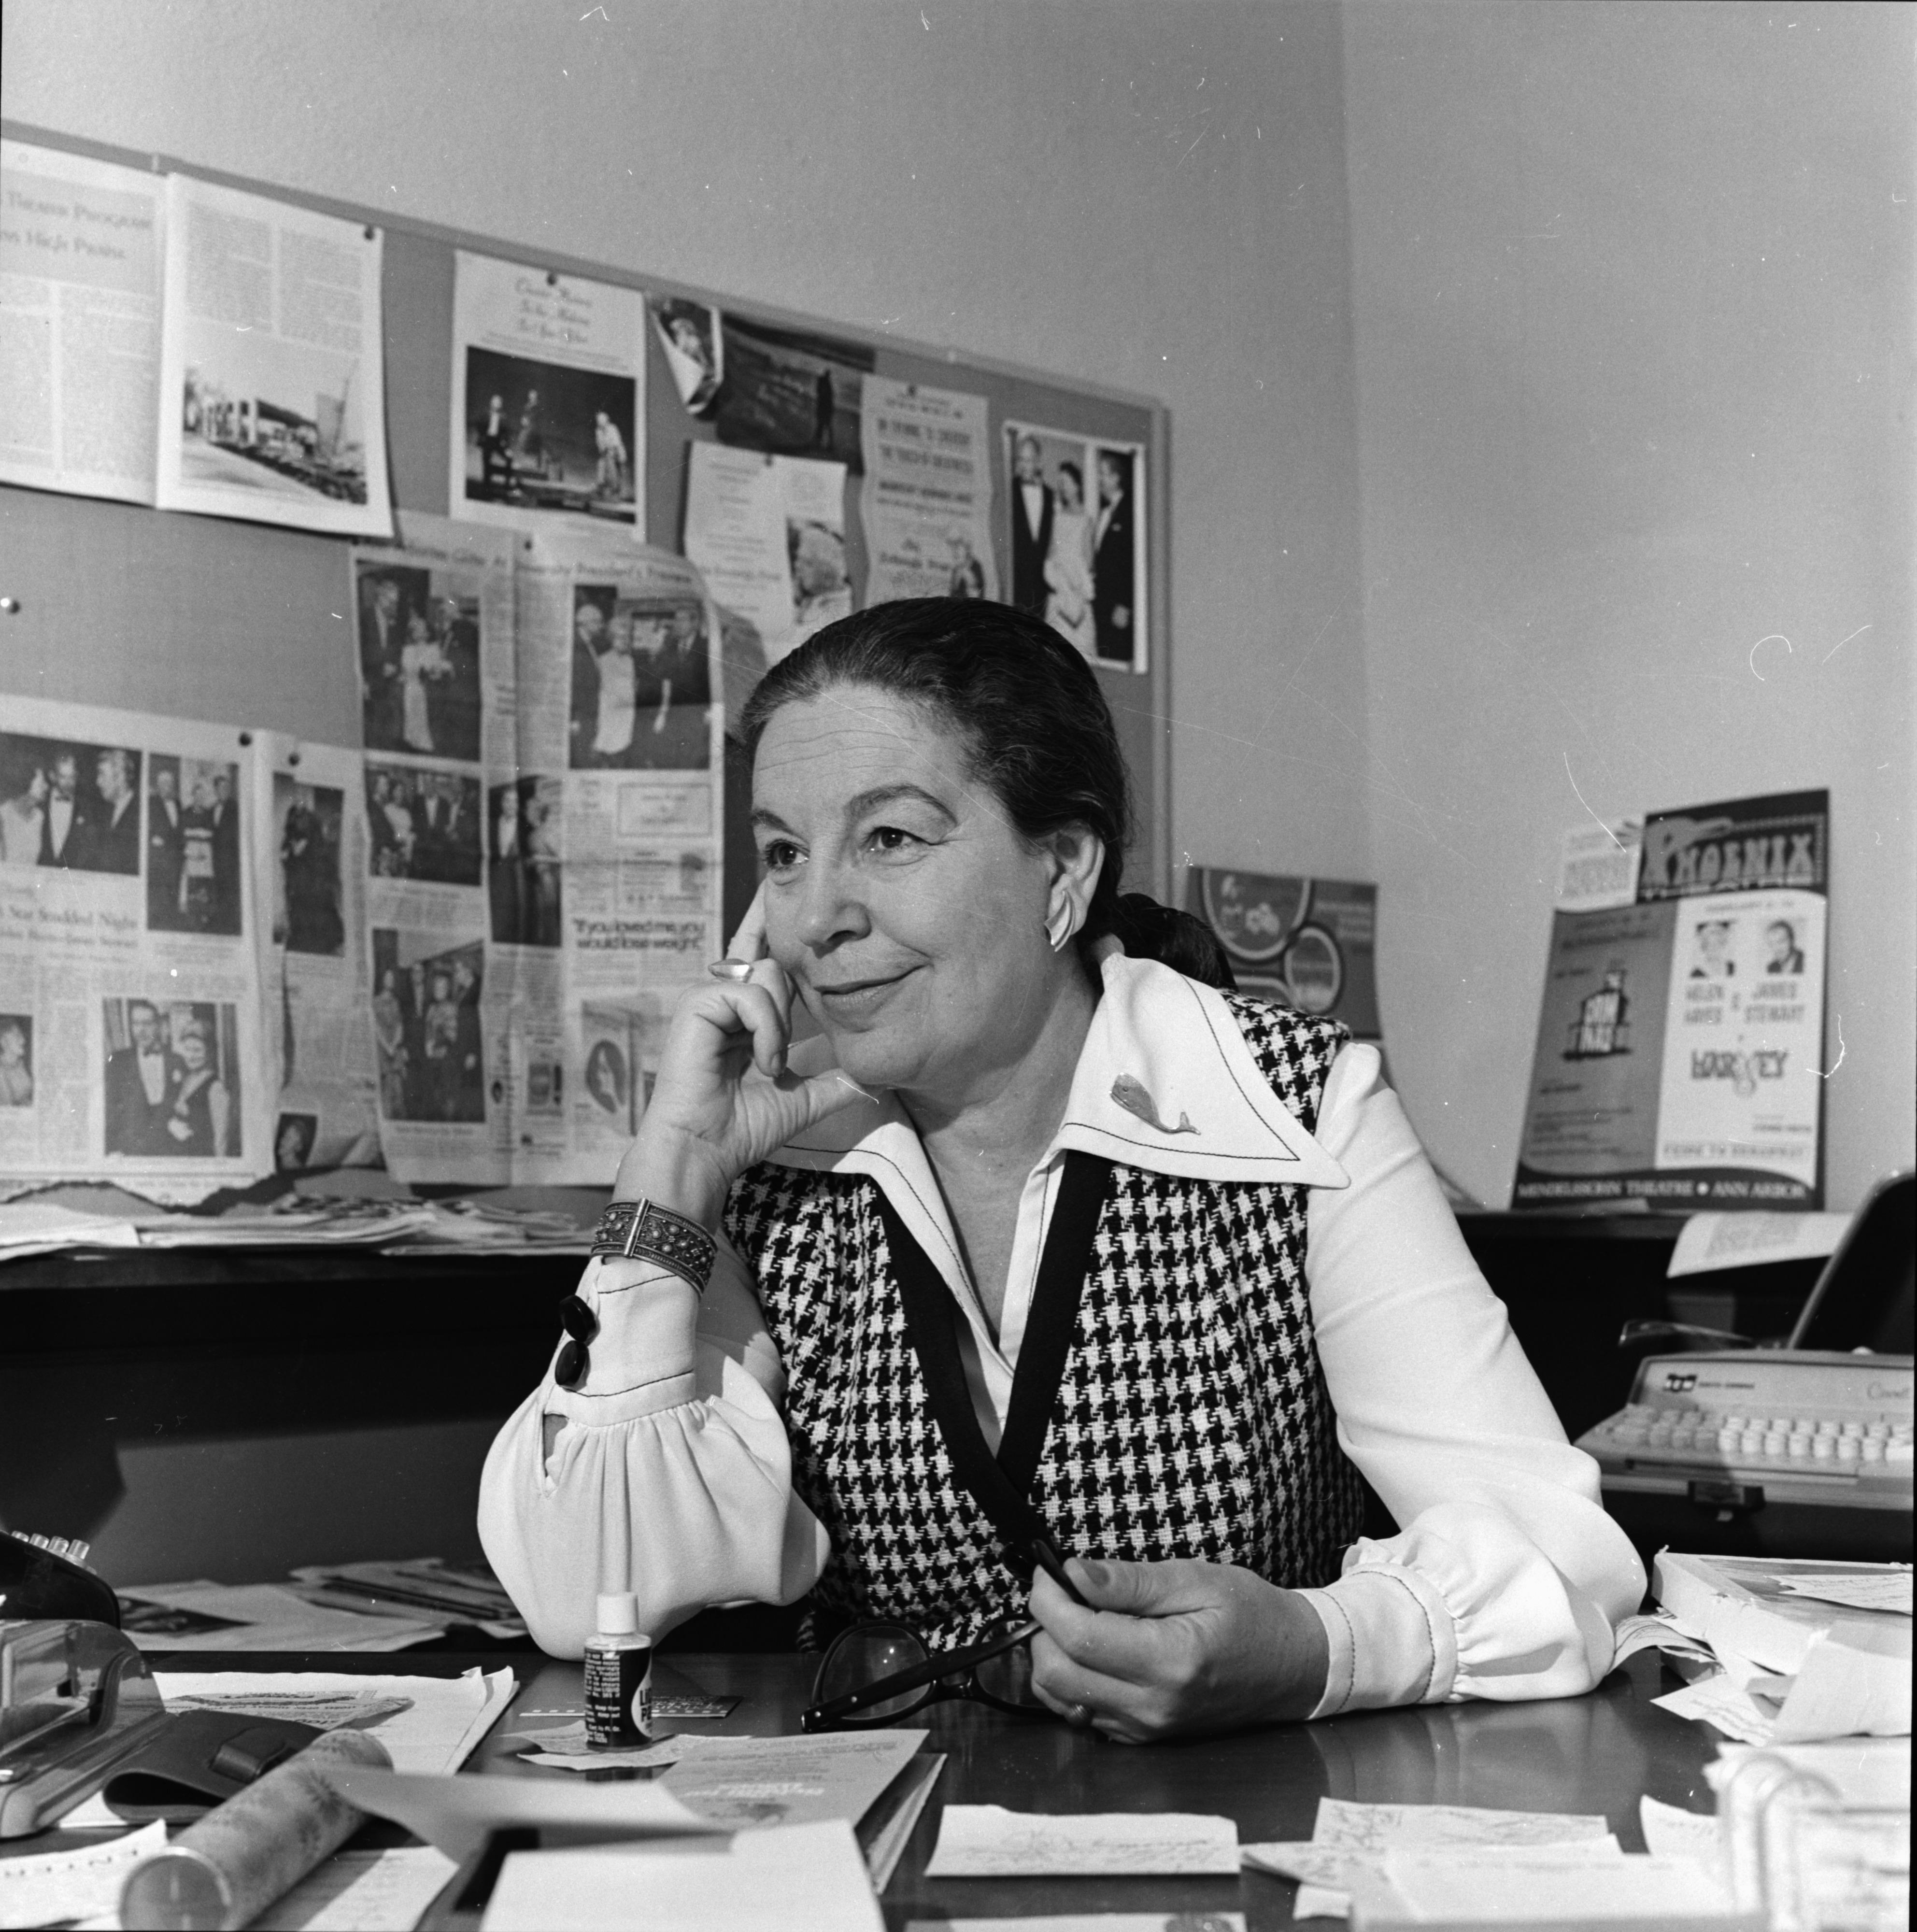 Marcella Cisney, director of the Professional Theater Program at the University of Michigan, December 1970 image